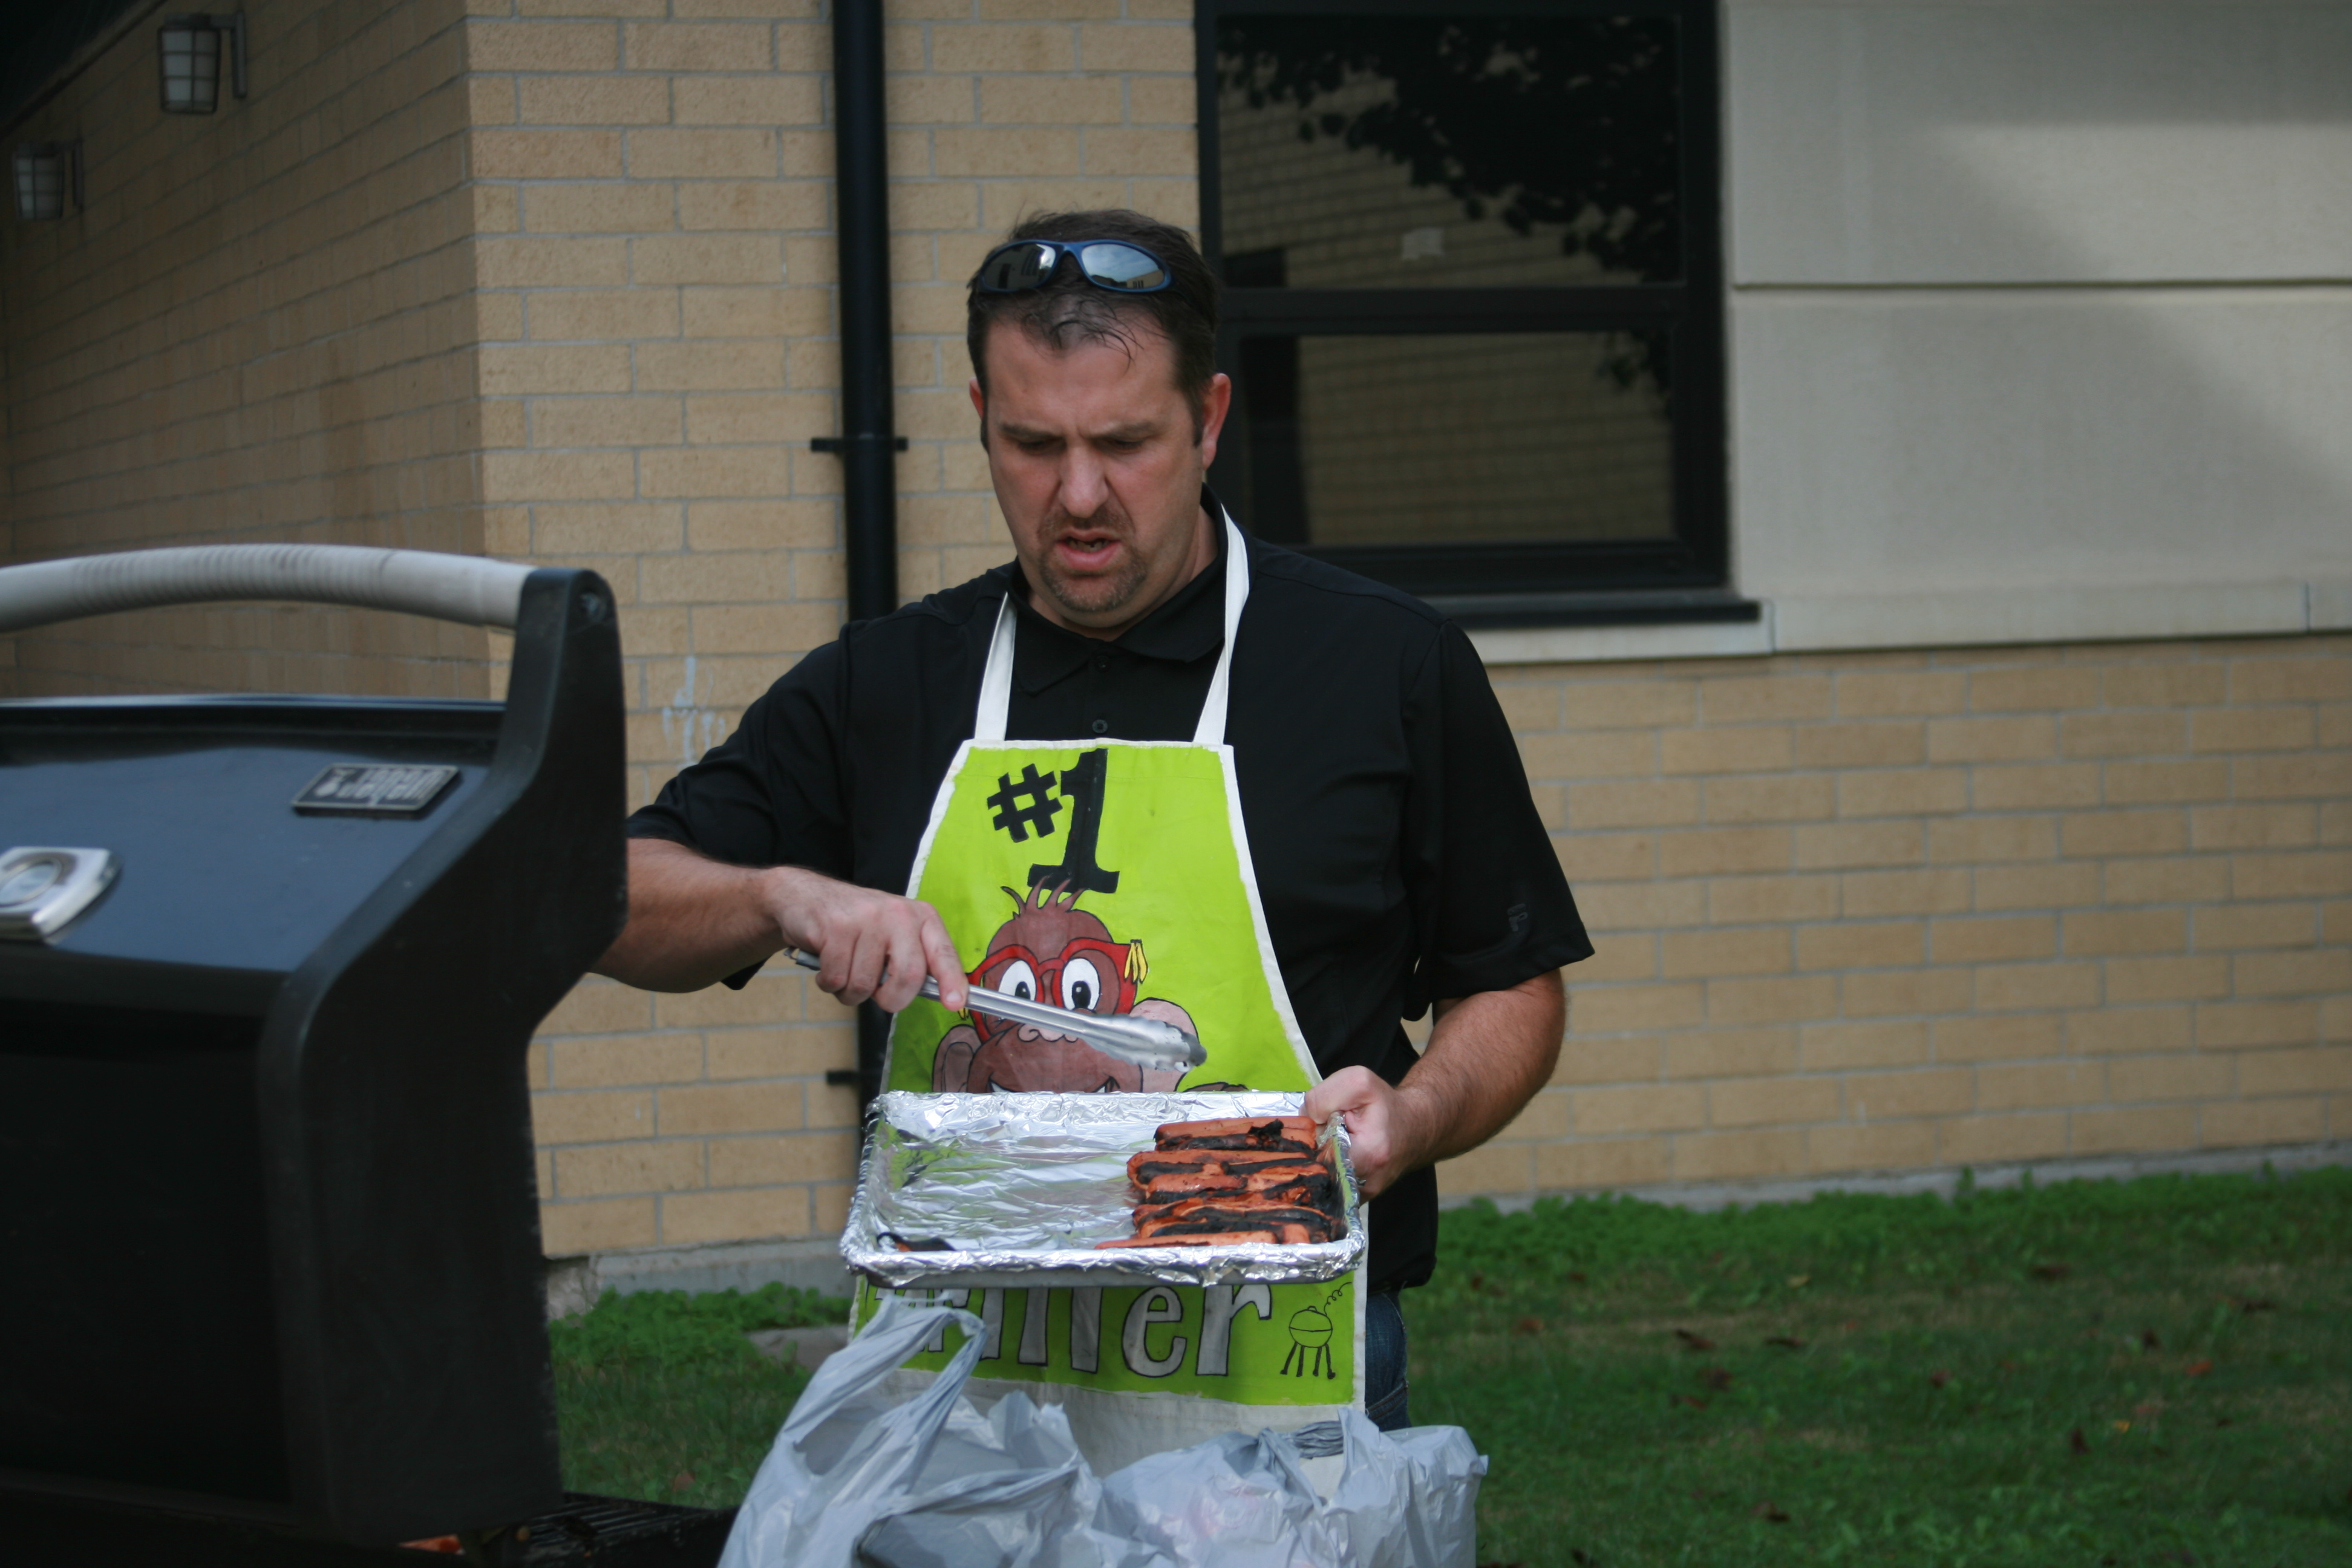 Mr. M cooking up the hotdogs on the 24th for the A.R. cookout.